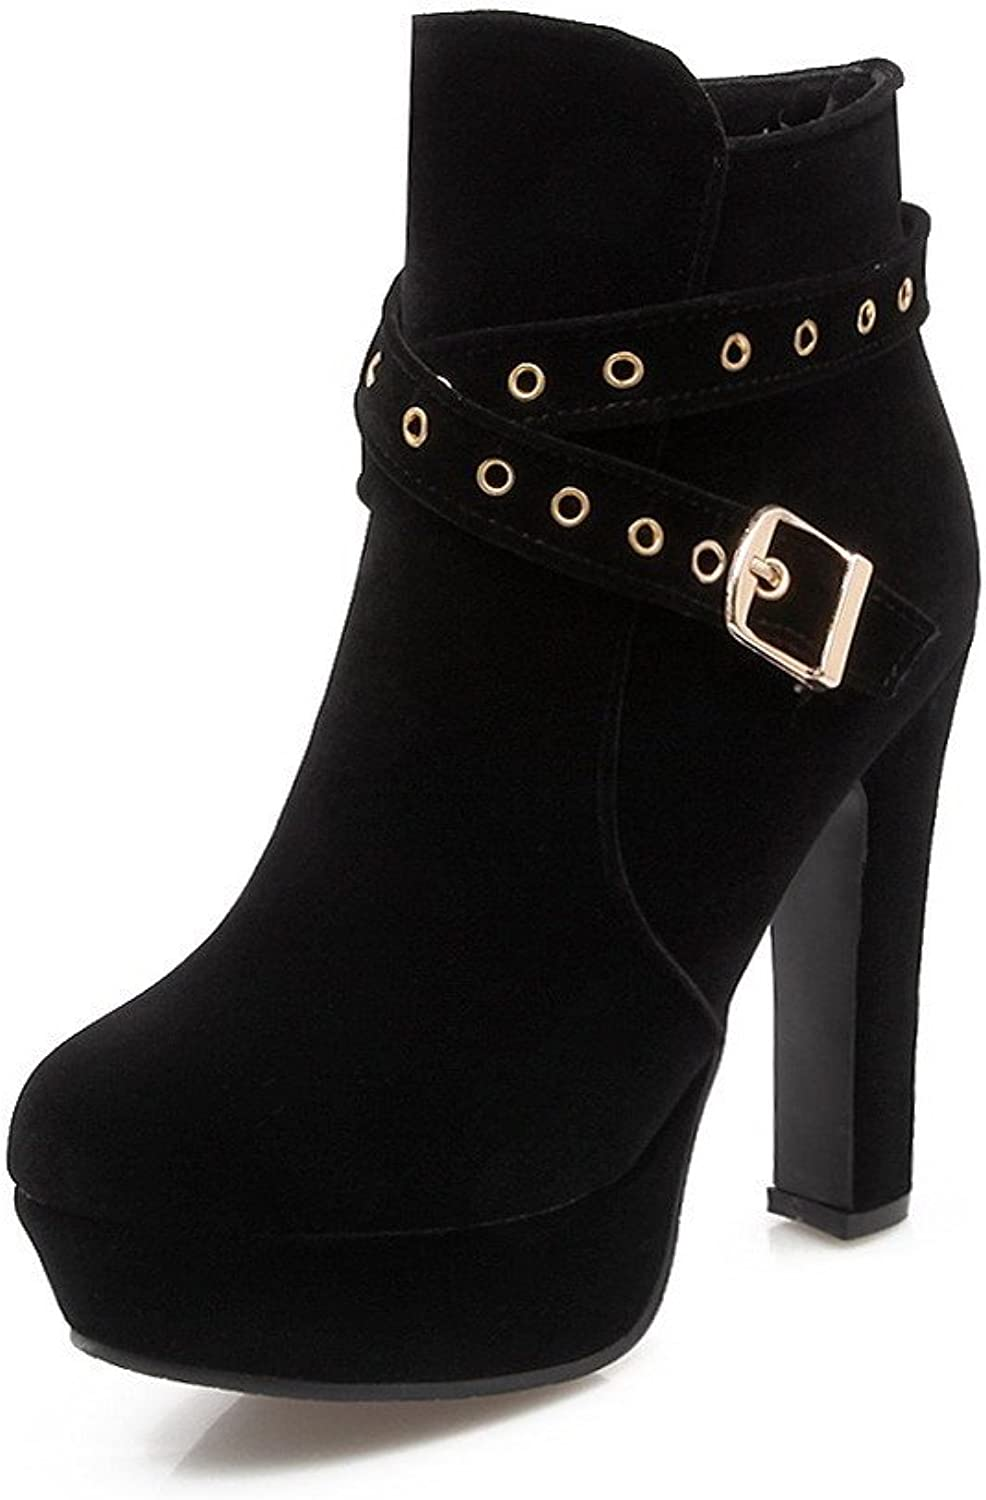 WeenFashion Women's Low-top Solid Chains Round Closed Toe High-Heels Boots